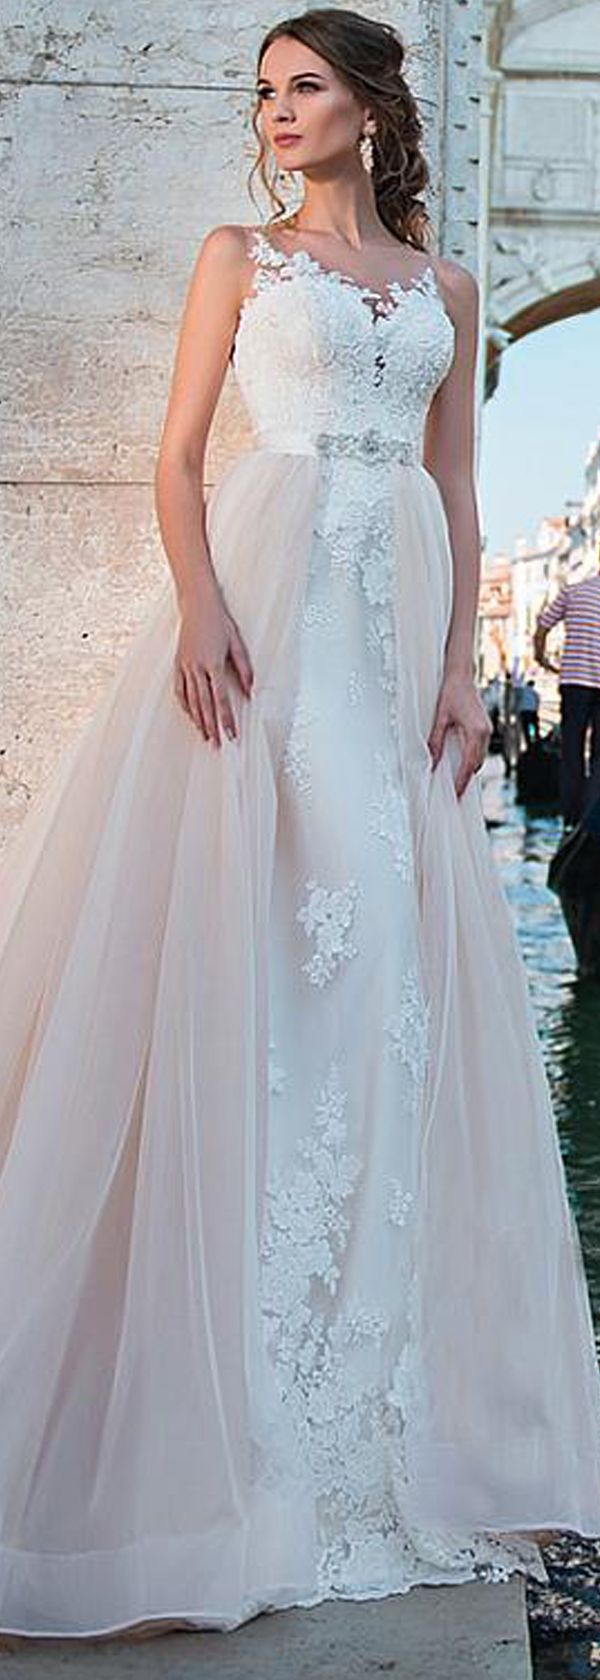 Fabulous Tulle Sheer Jewel Neckline 2 In 1 Wedding Dress With Lace ...